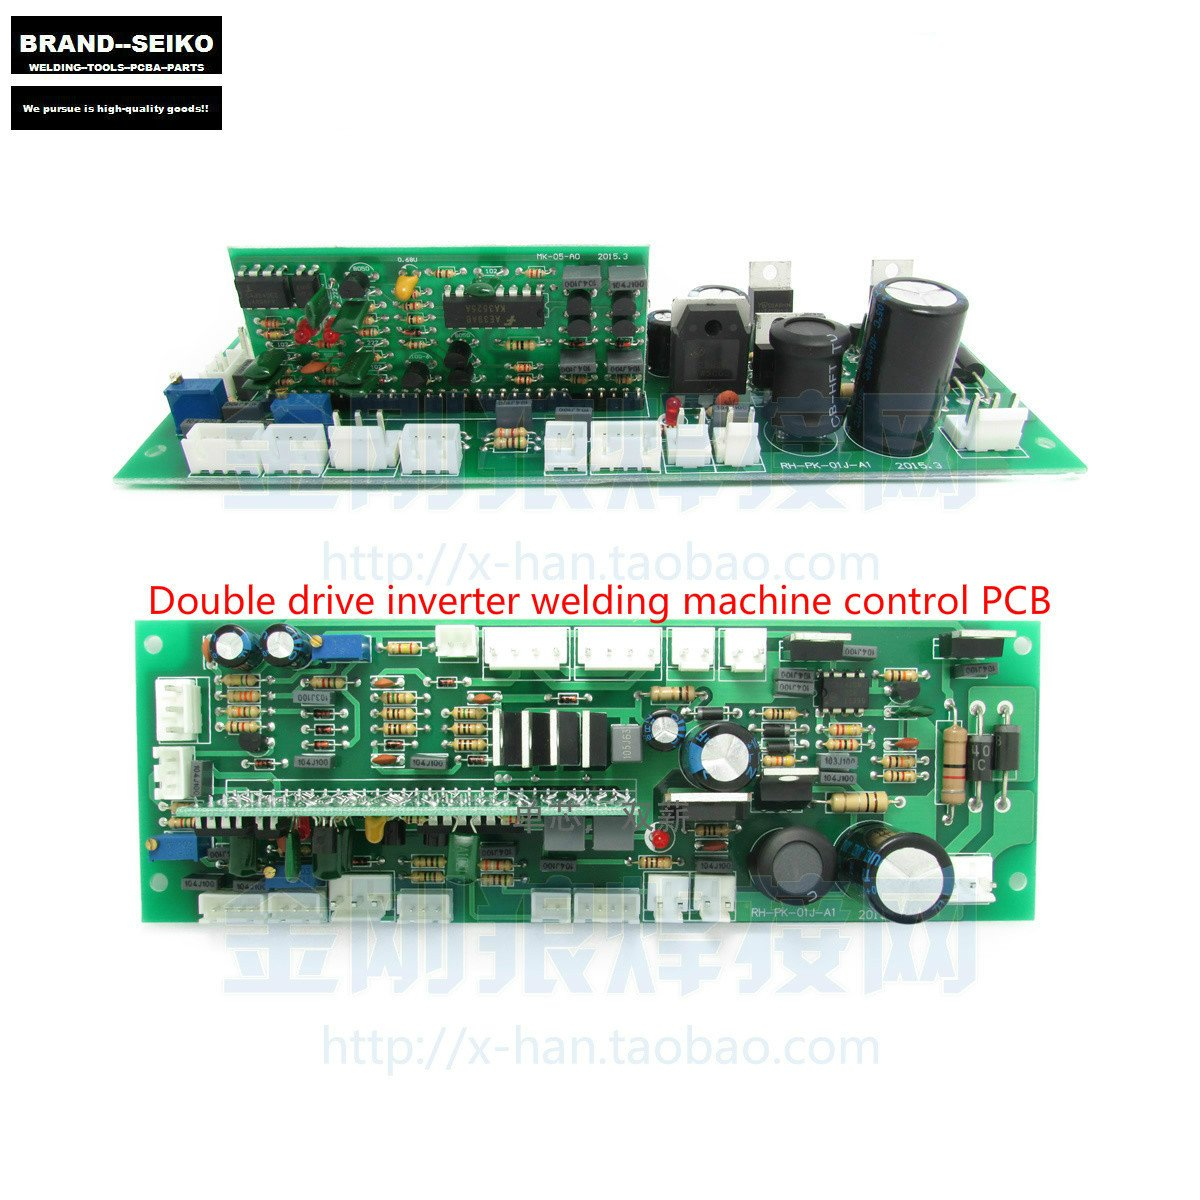 Generic Single Drive 380 V Three Phase Inverter Welding Machine Spot Welder Controller Board Pcb Without Components Circuit General Strip Plate Panel Industrial Scientific